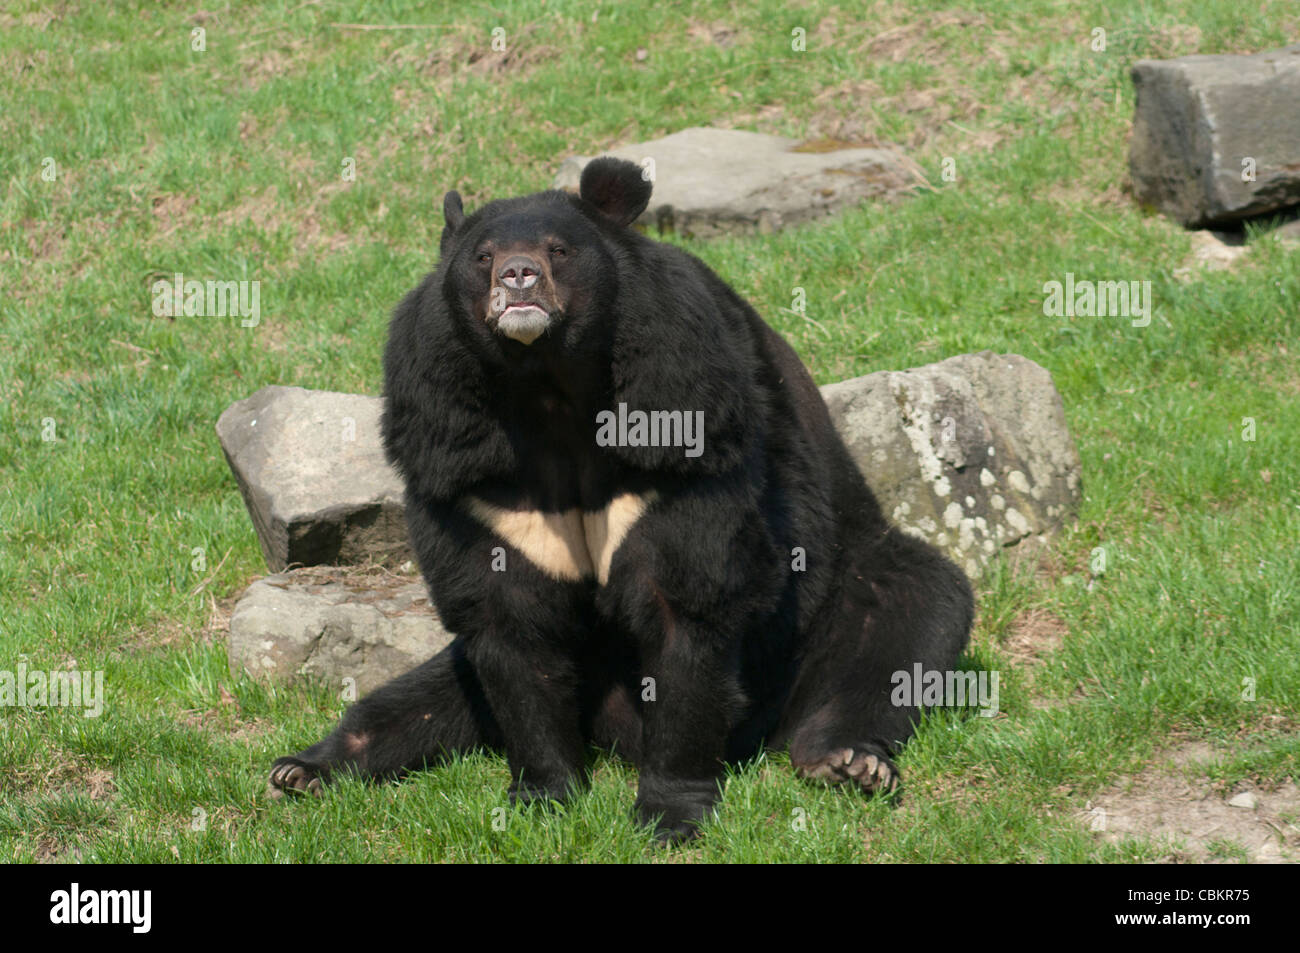 Himalayan bear sitting in the grass among the rocks - Stock Image